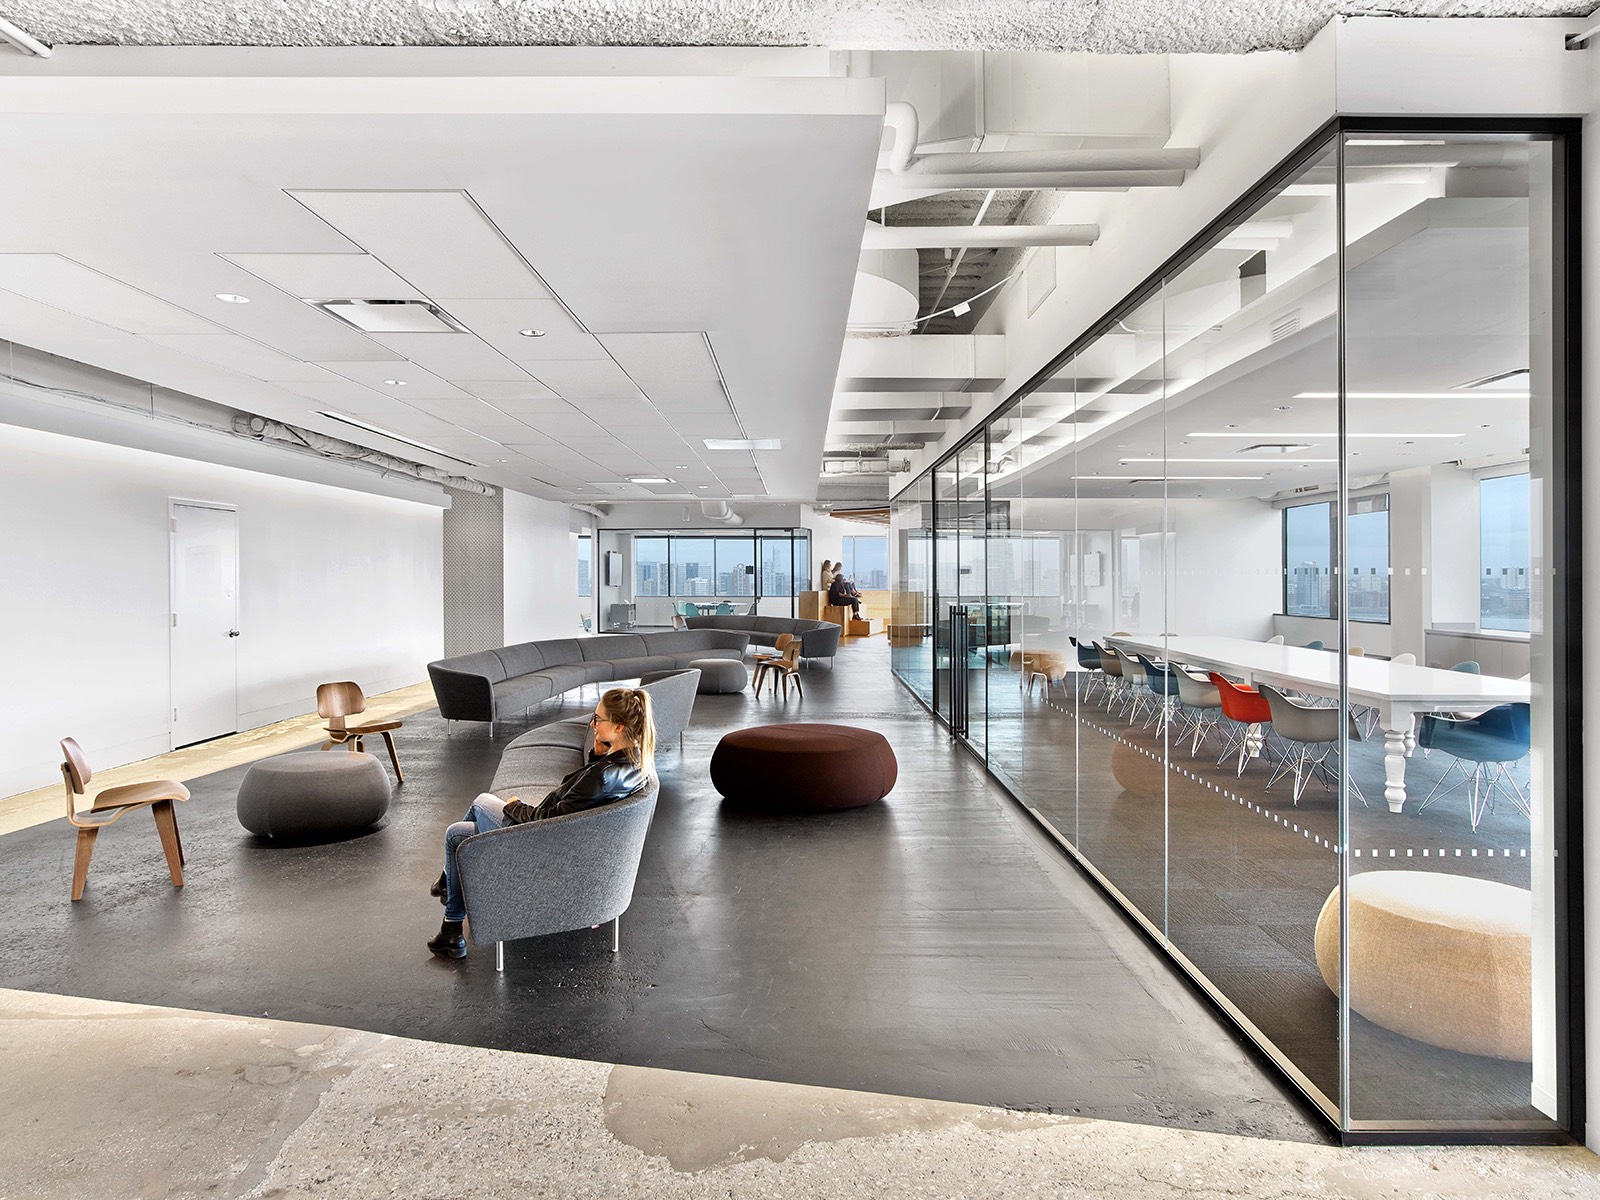 saatchi-saatchi-nyc-office-4